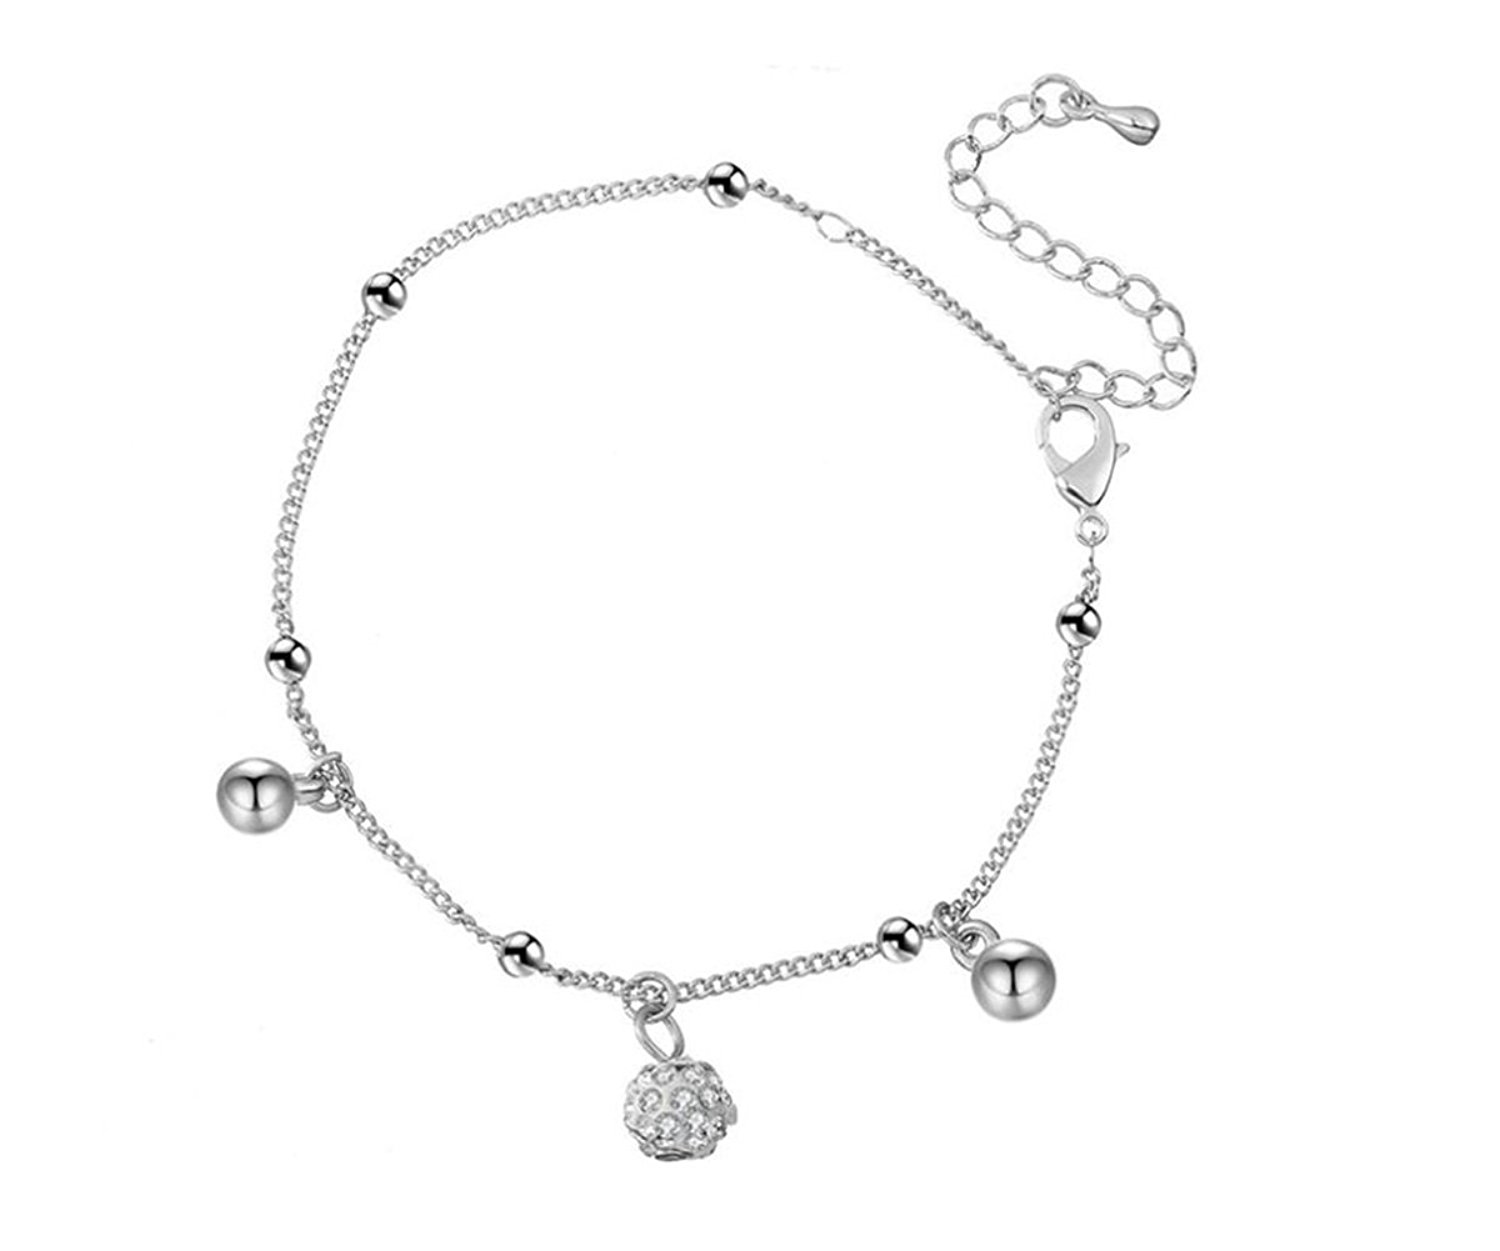 PORPI-JOJO Cubic Zirconia Ball Women Anklet Sexy Beach Anklets Foot Jewelry Adjustable for Mother's Day